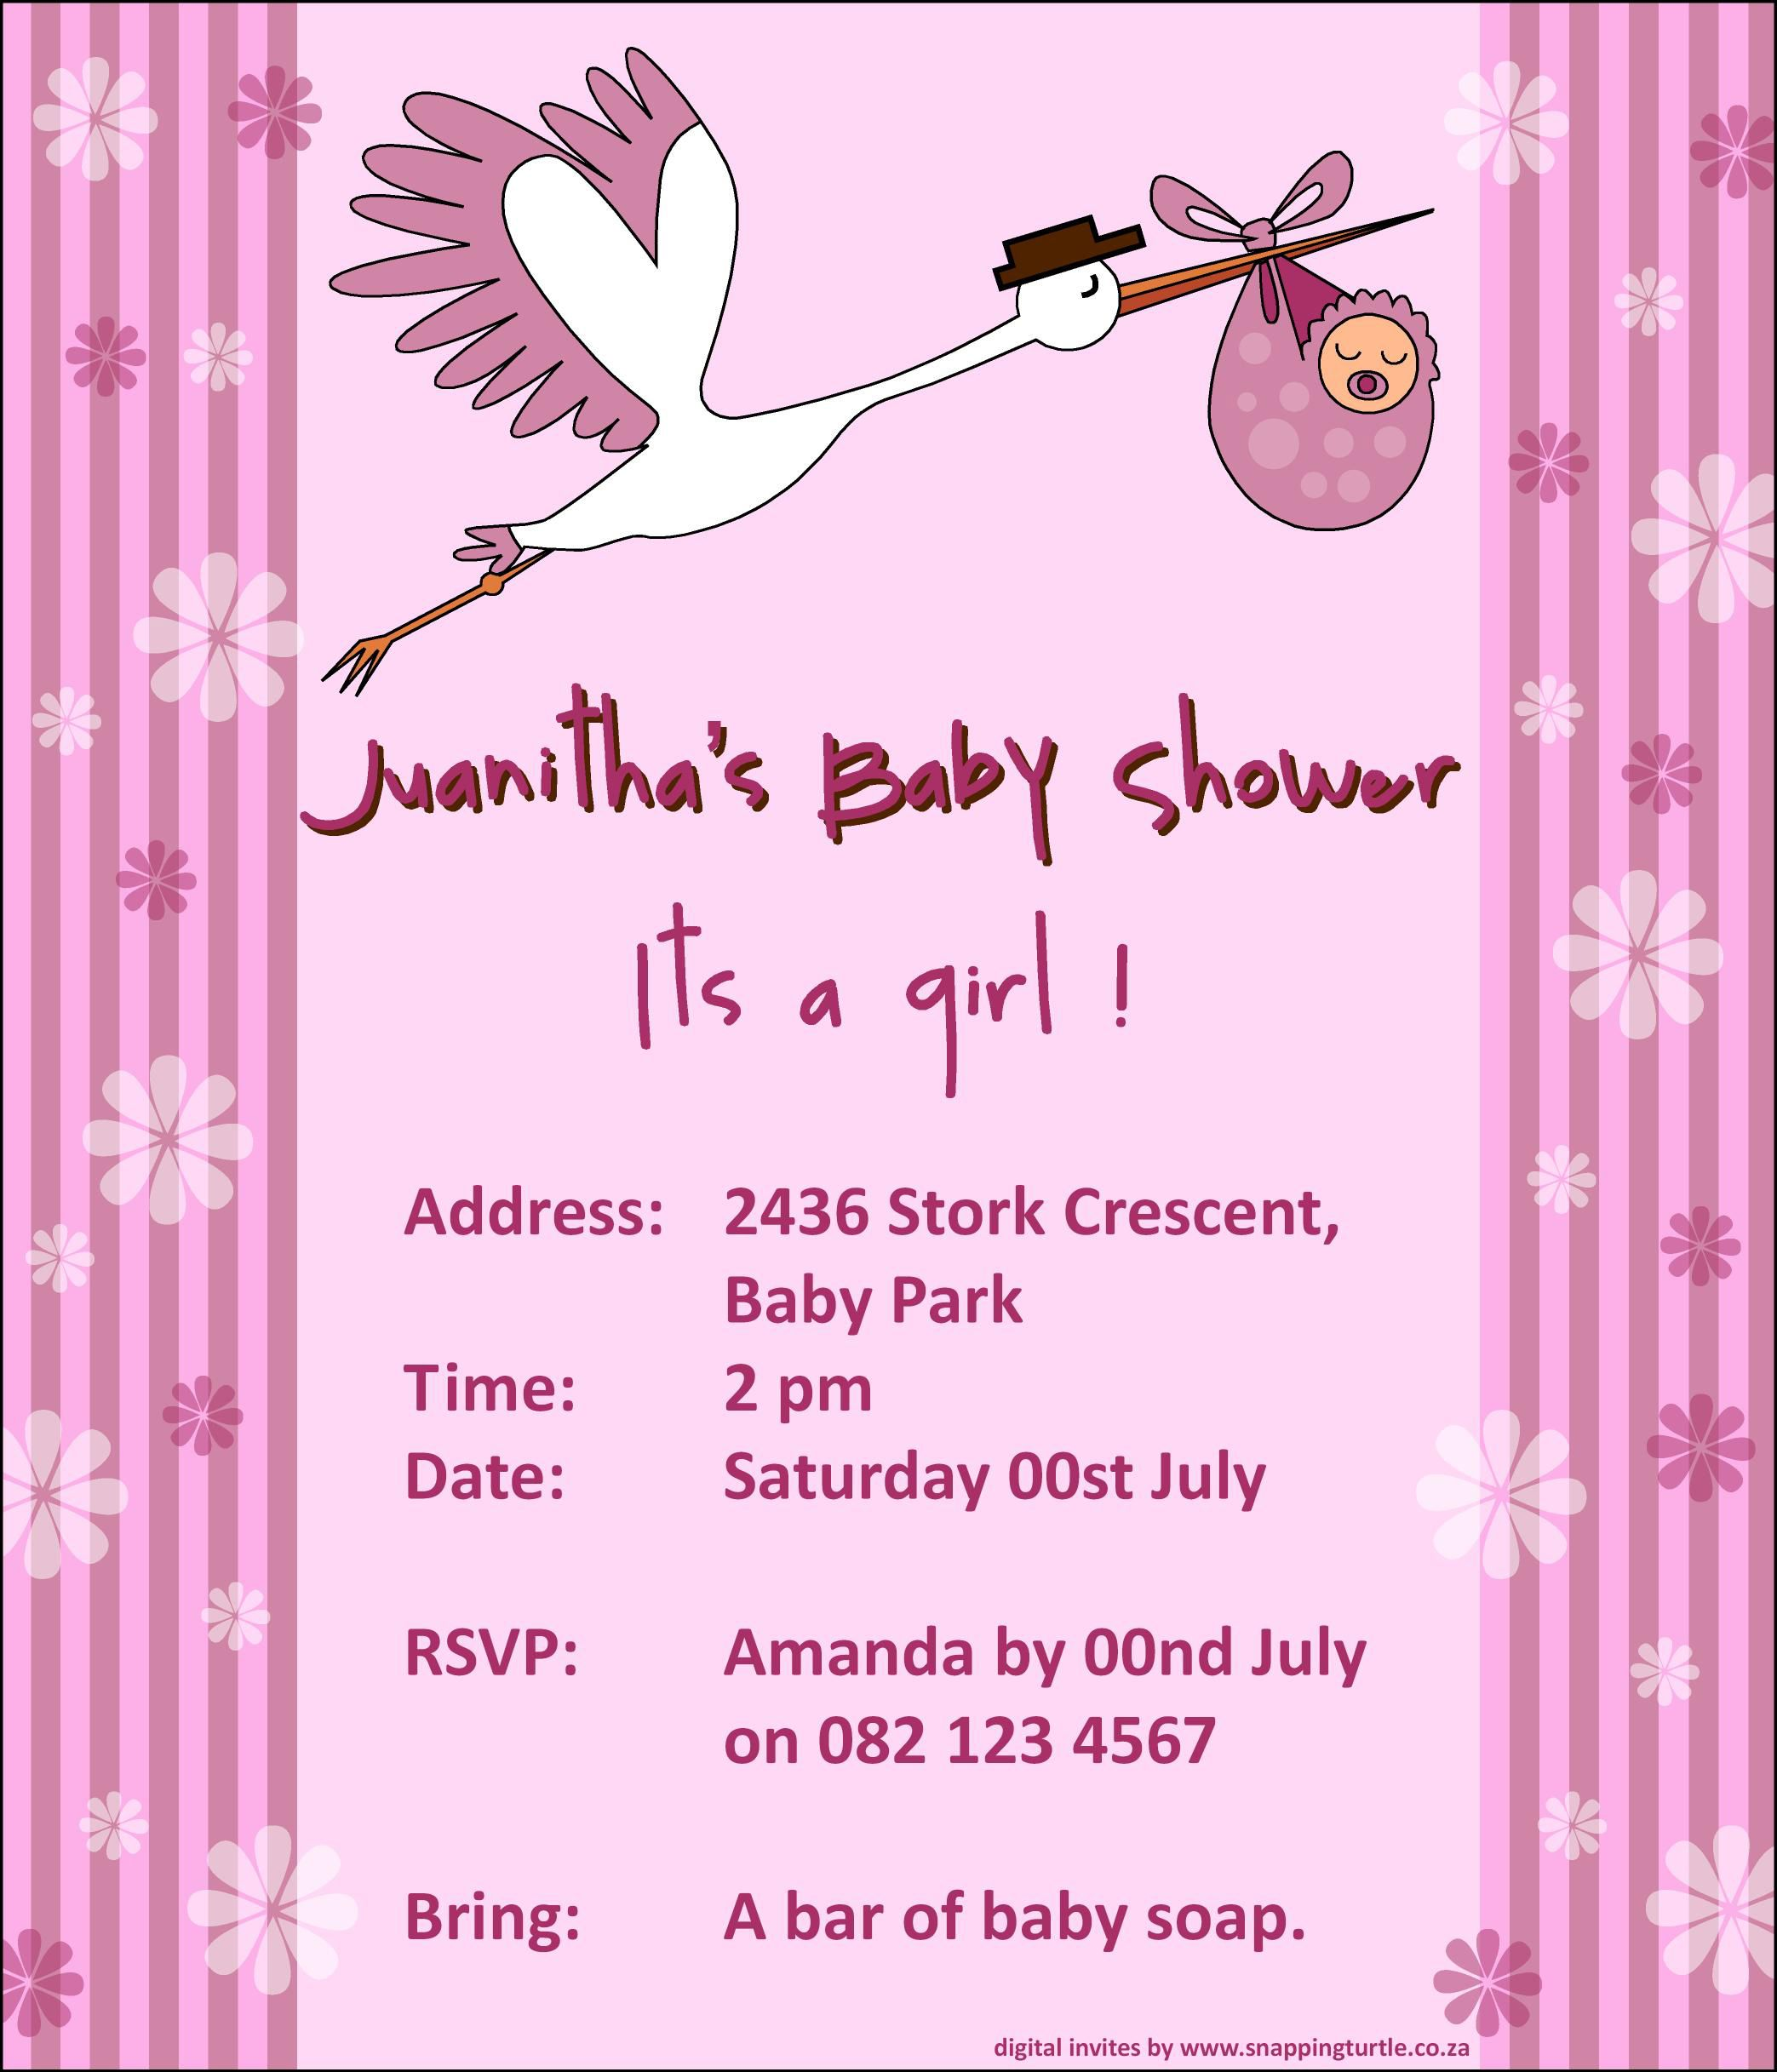 Collection of thousands of free baby shower invitation from all over as you know we love doing digital invites heres another one we whipped up for a baby shower if you would like a digital email invitation please filmwisefo Choice Image